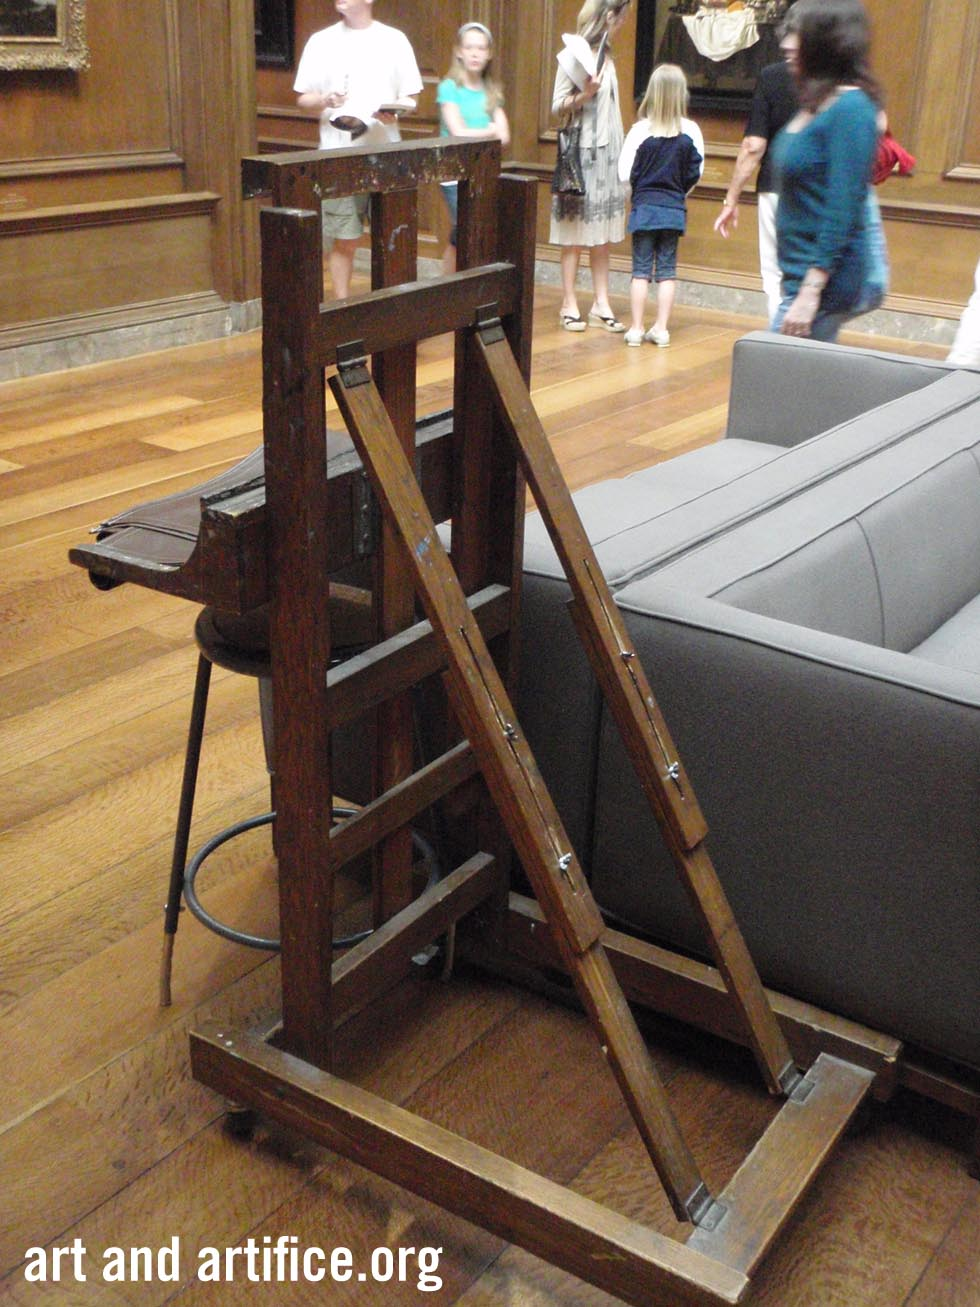 Larger - Art easel at the National Gallery of Art Washington DC